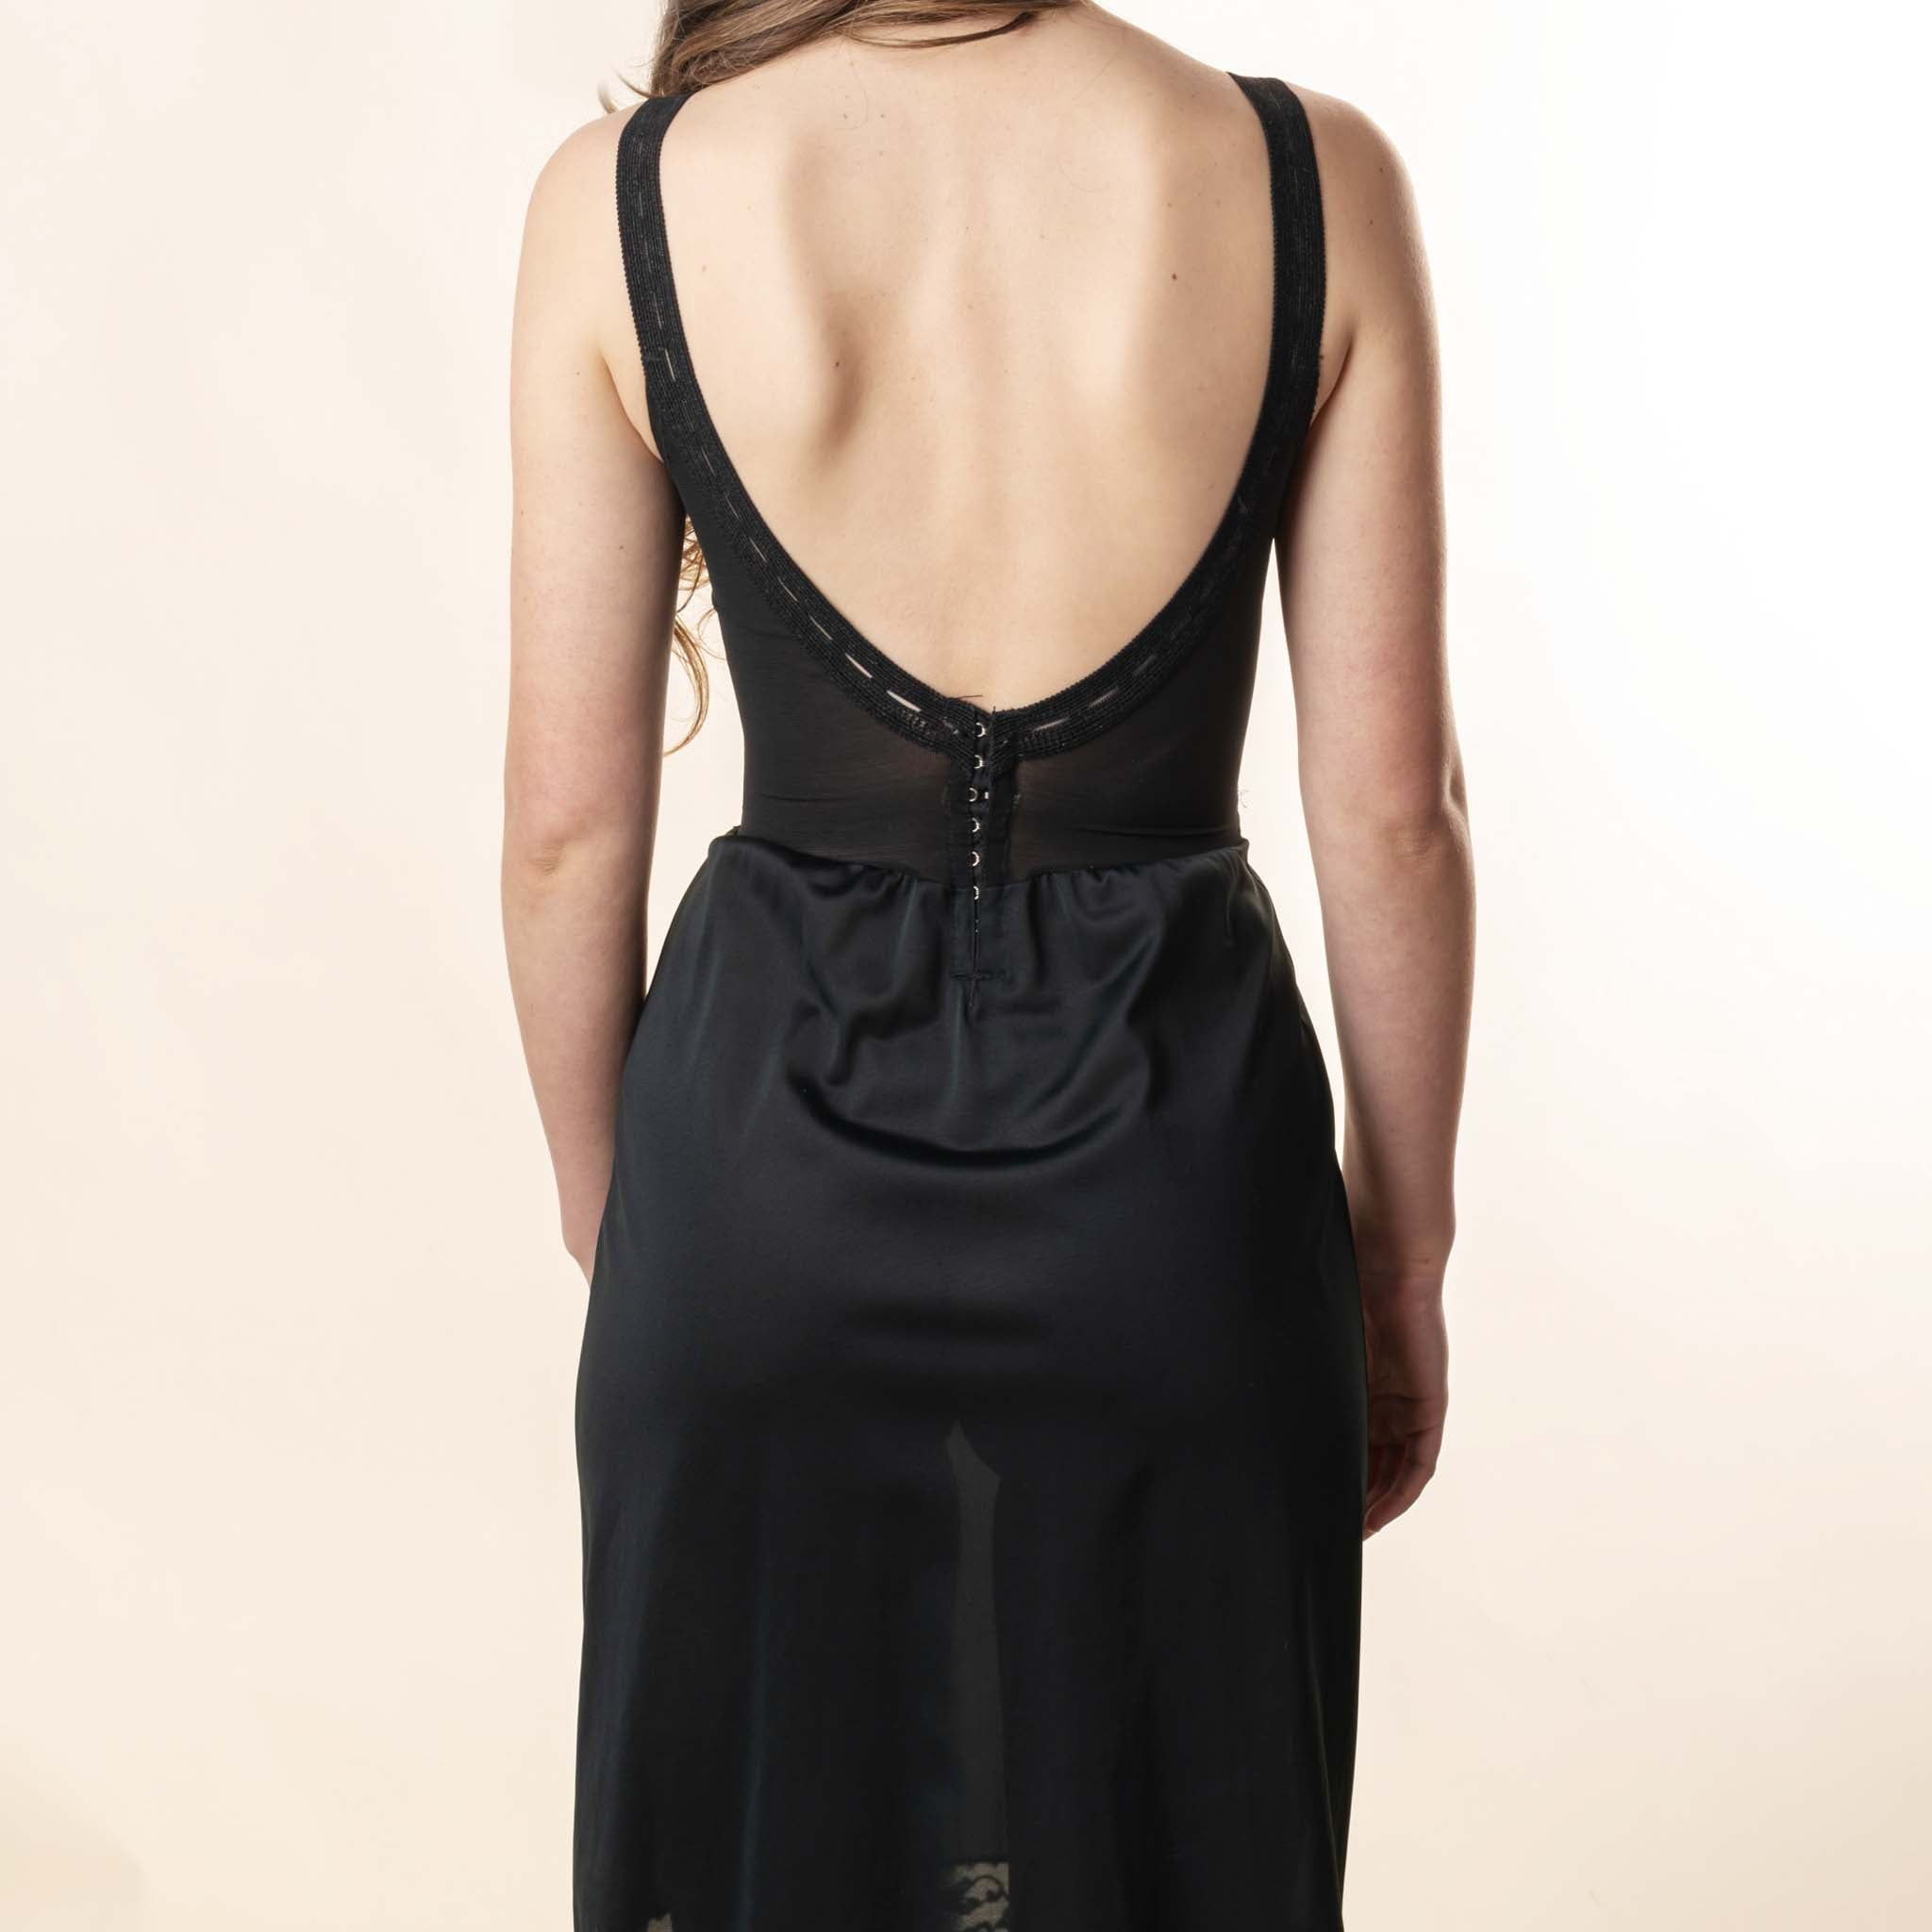 VINTAGE BLACK CORSET SLIP DRESS : XS